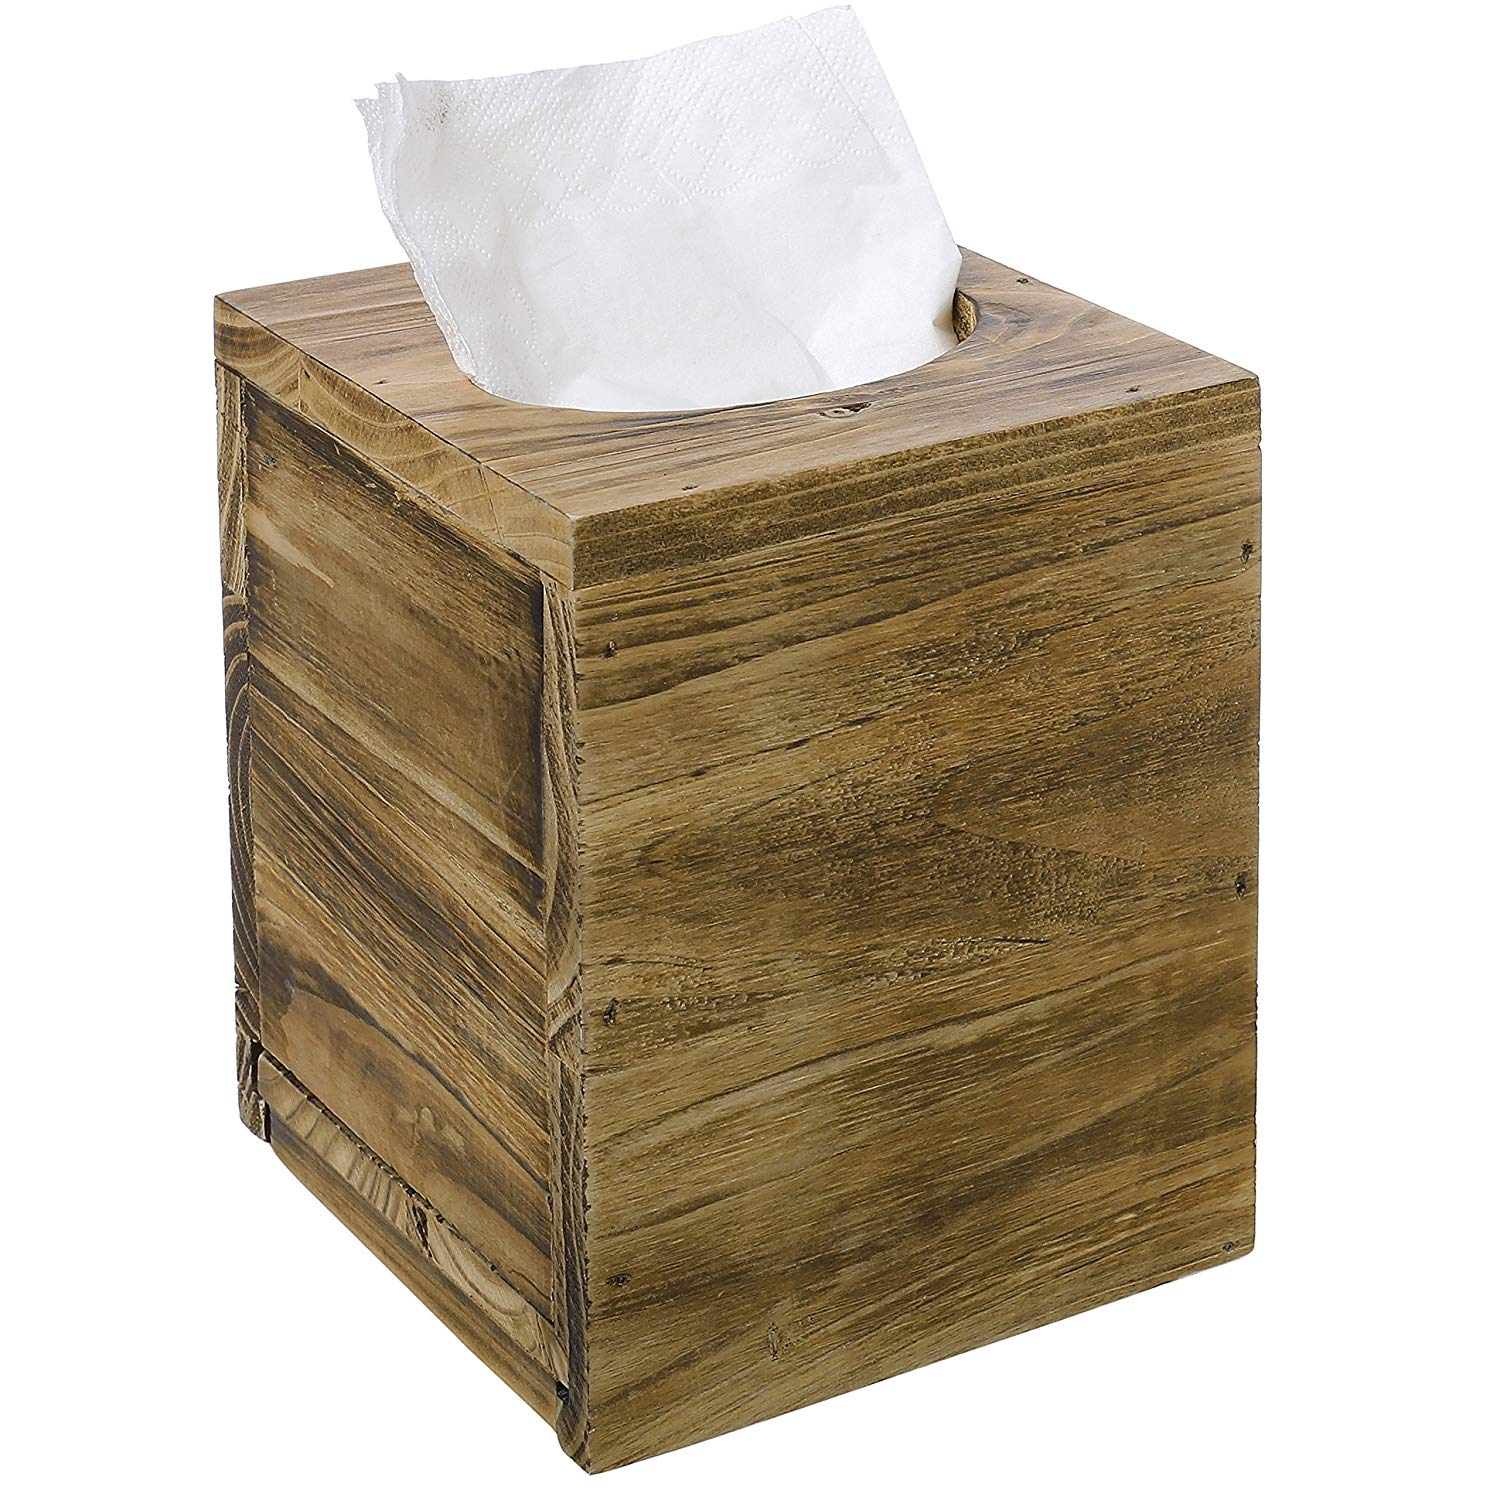 Office home decoration Rustic Distressed Square wooden Tissue Box Cover